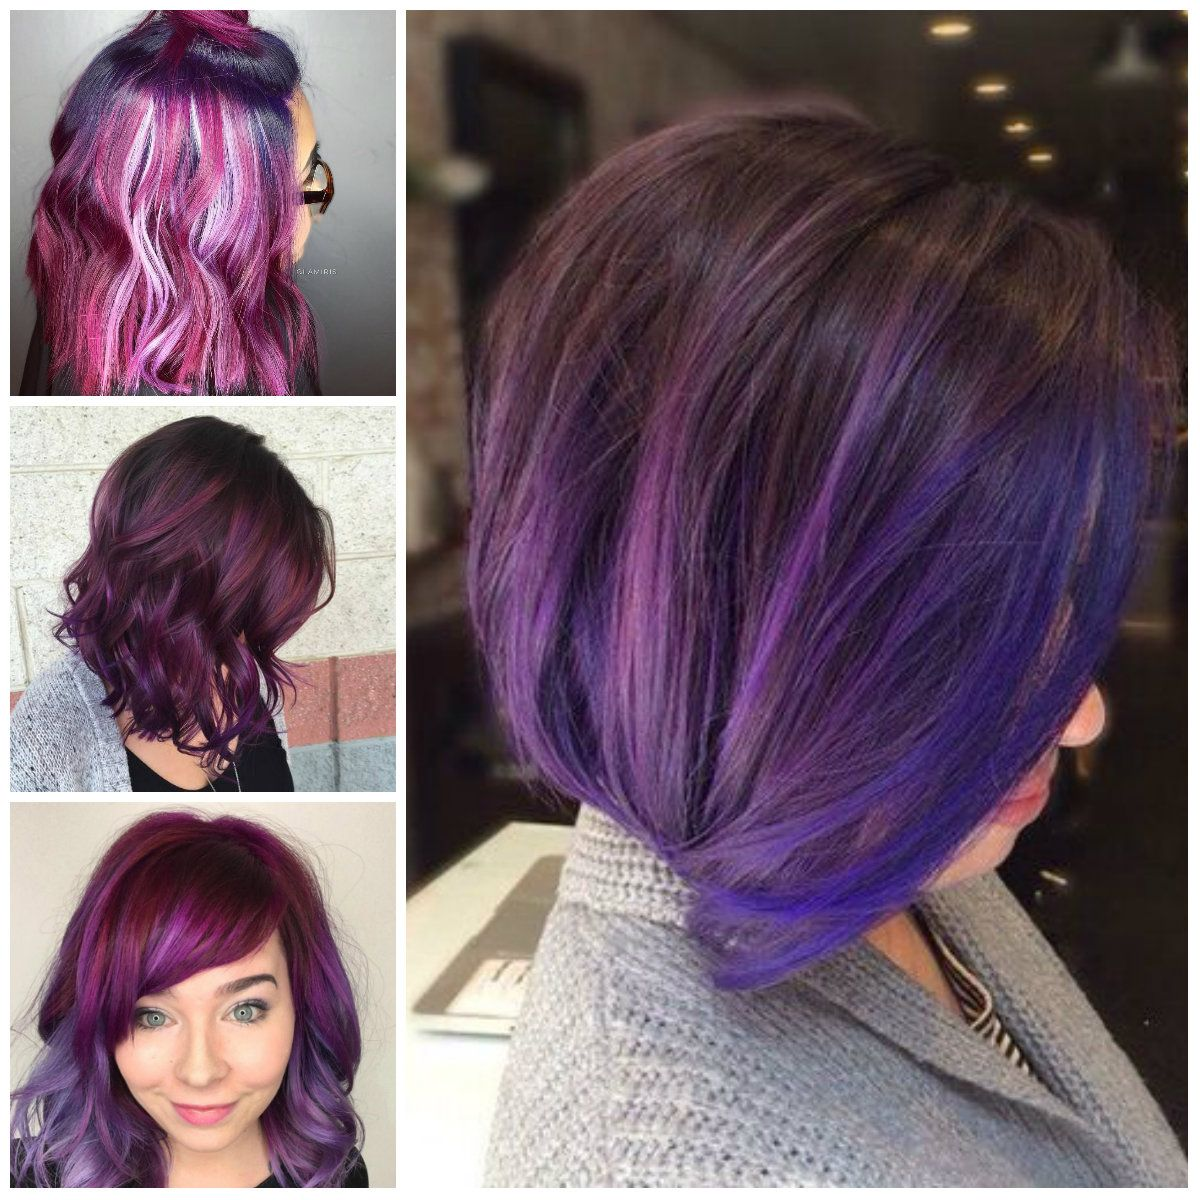 Wearing Purple Bright In Your Hair Can Be Really Fun Any Color Of Rainbow Included The Shades Are Welcomed Being Royalty Makes